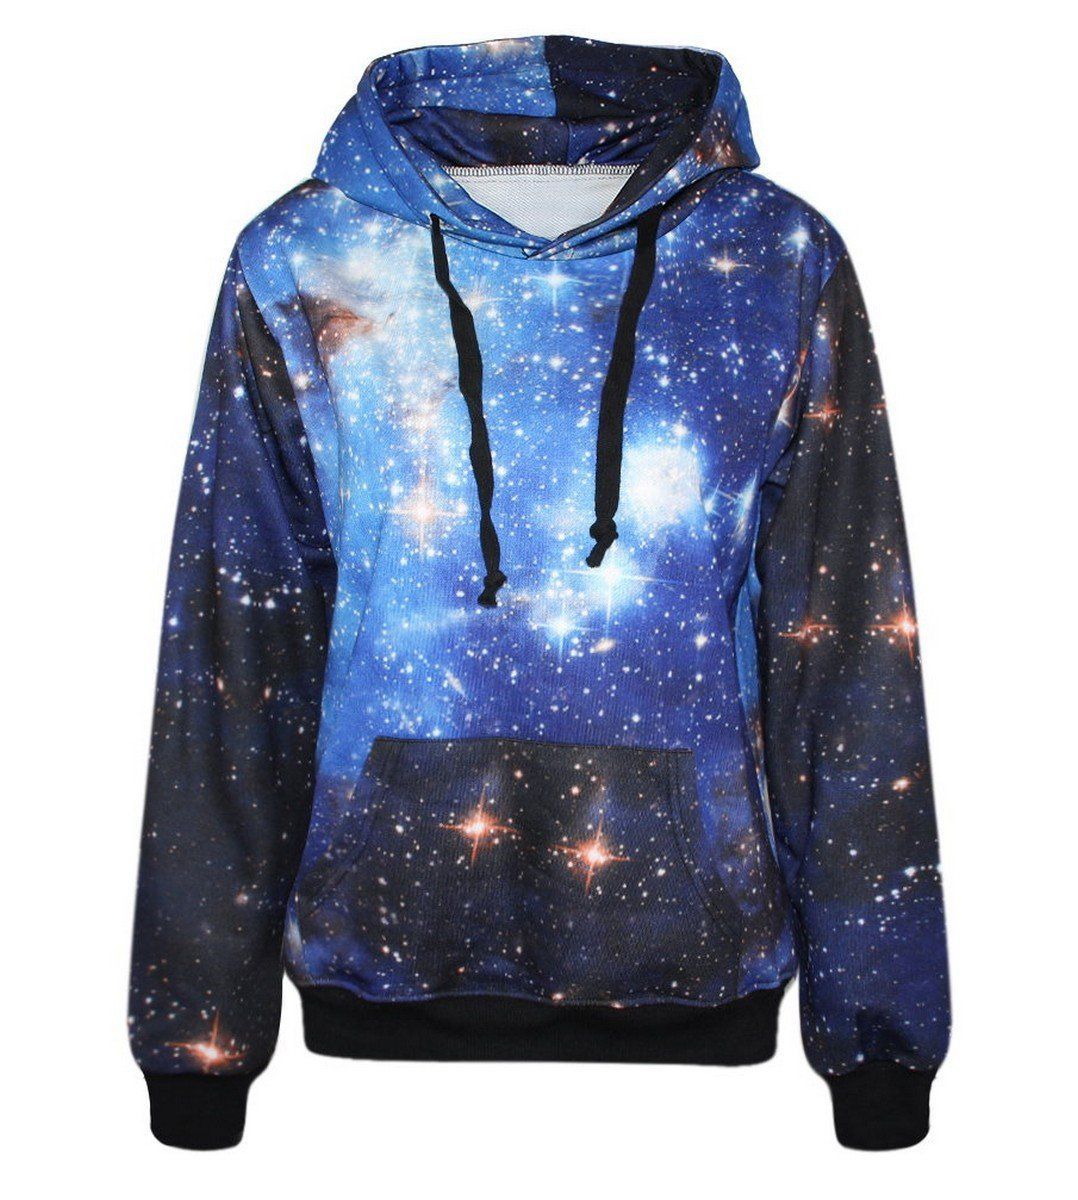 Lovelife  Blue Galaxy Print Pocket Long Sleeve Jacket Hoodies Sweatshirt   Amazon.co.uk  Clothing 10be64a21454b